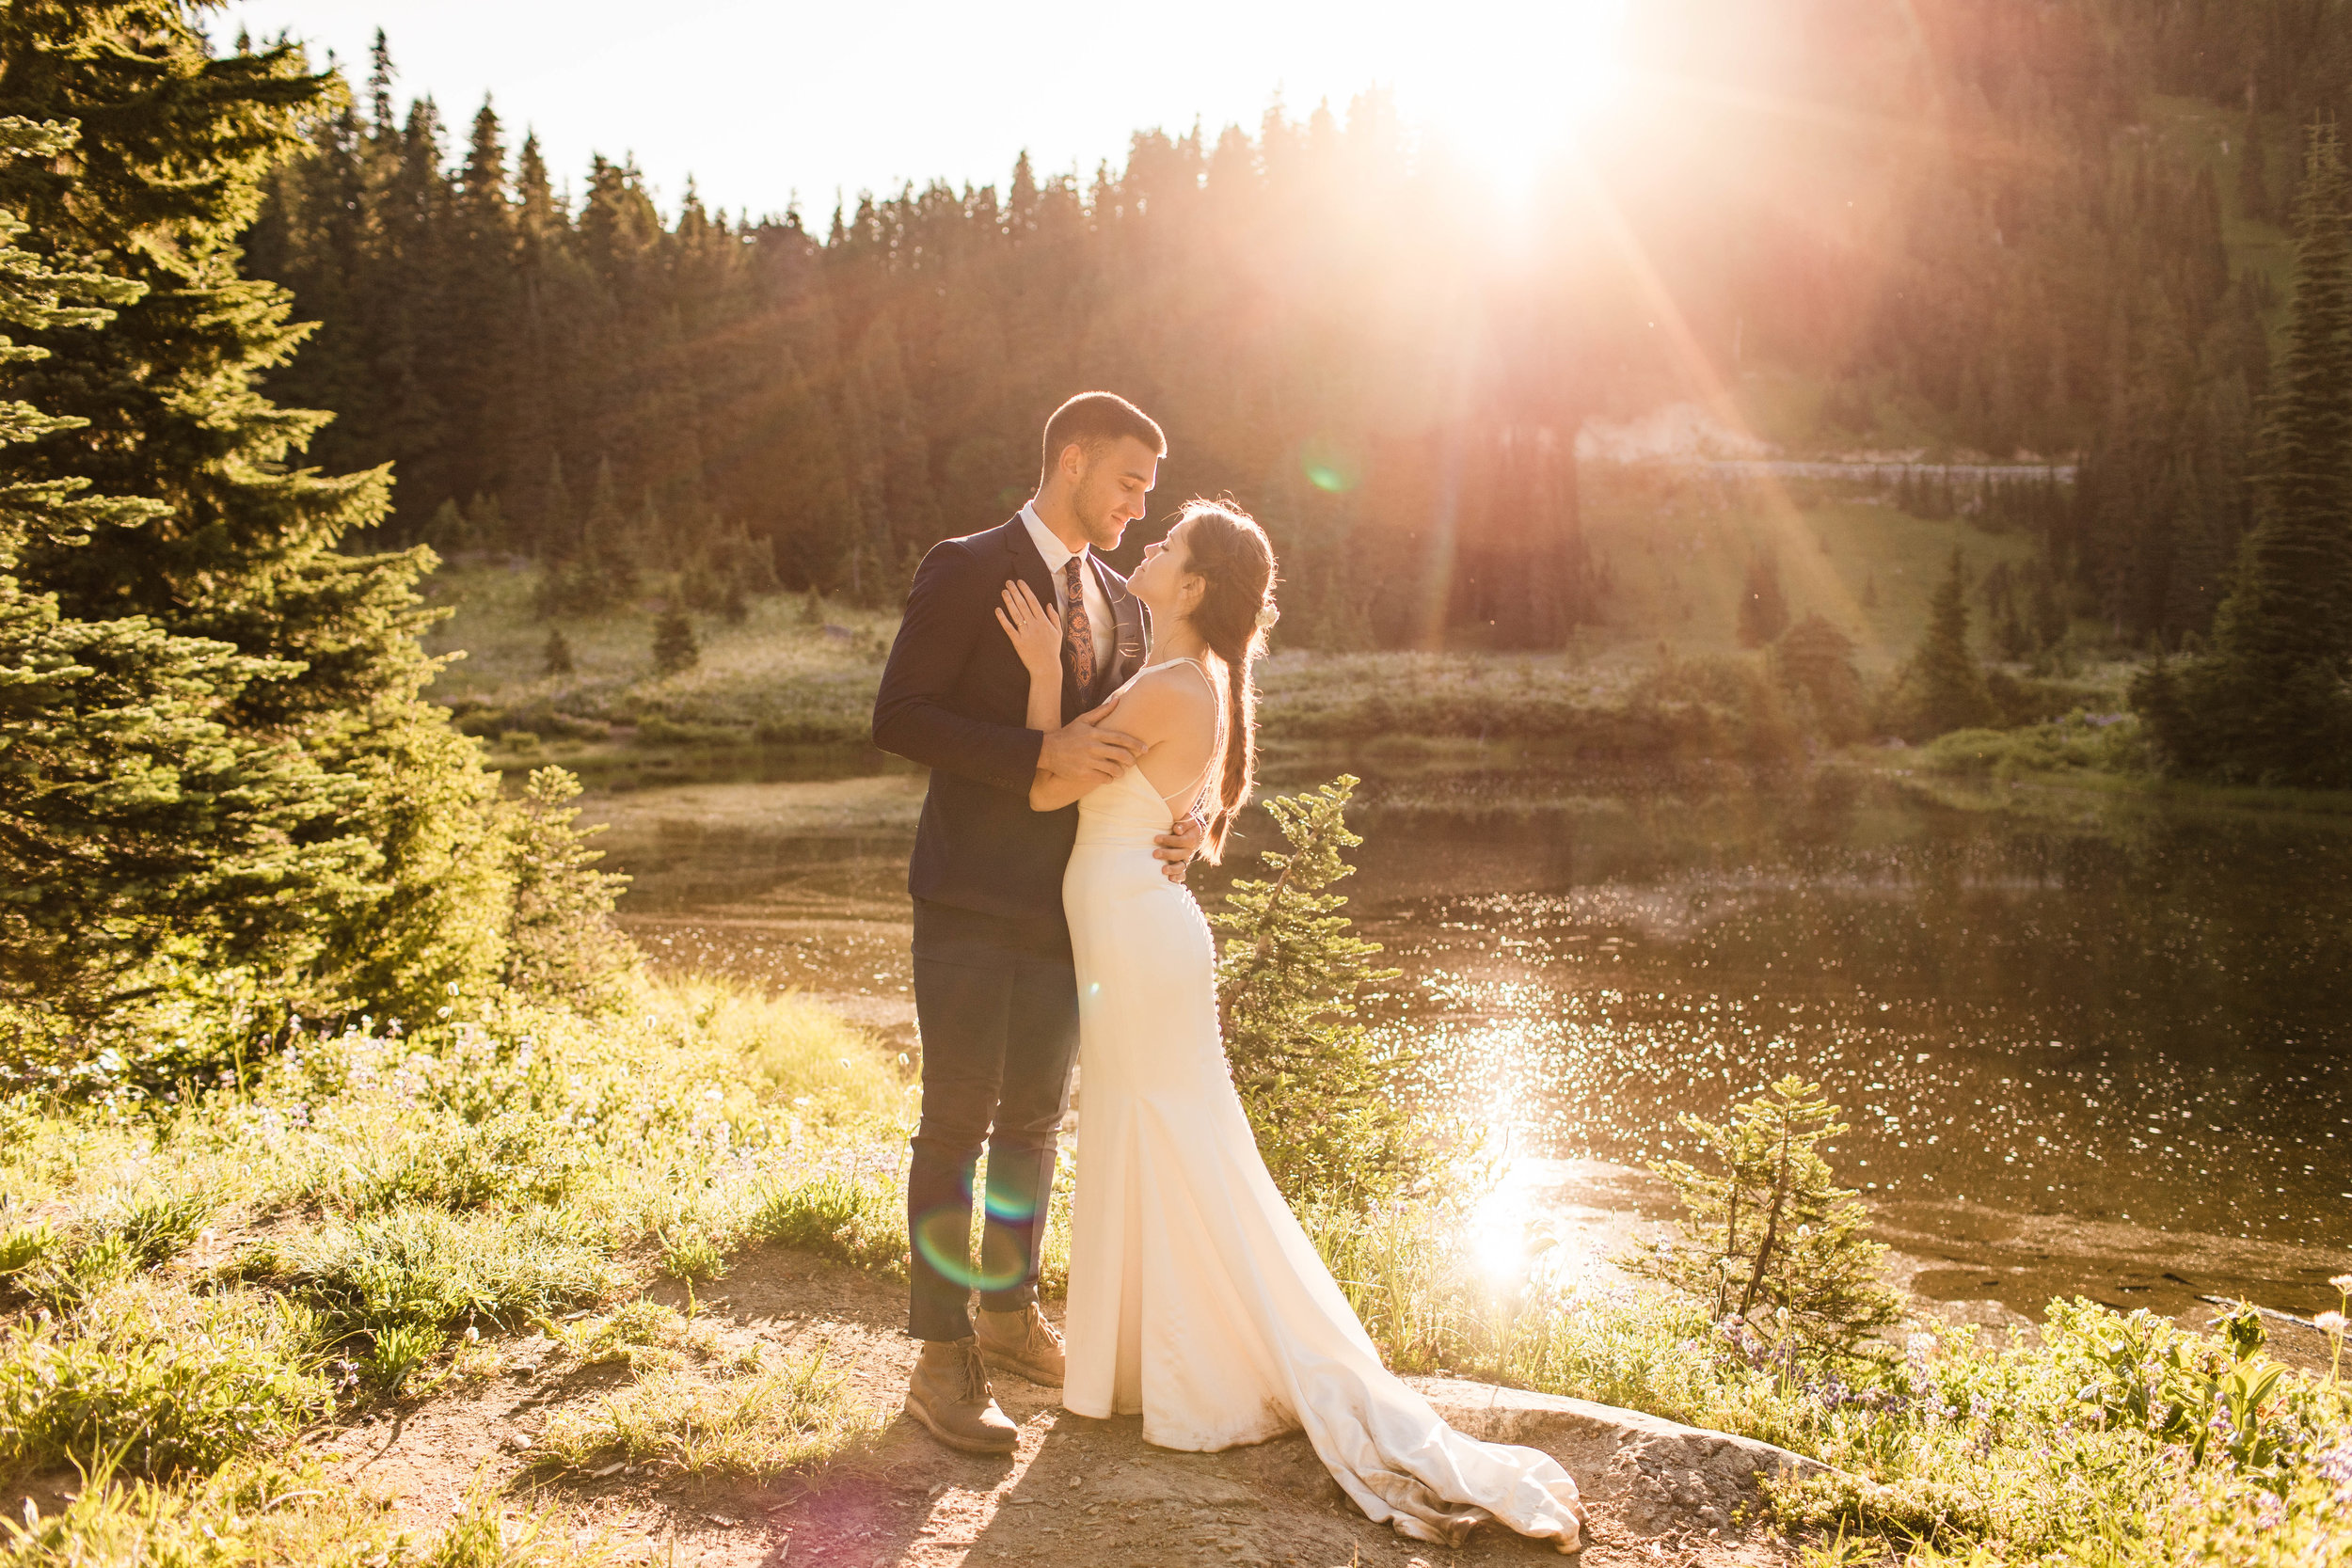 Mt Rainier National Park elopement photos in Washington state | Seattle adventure wedding and elopement photographers